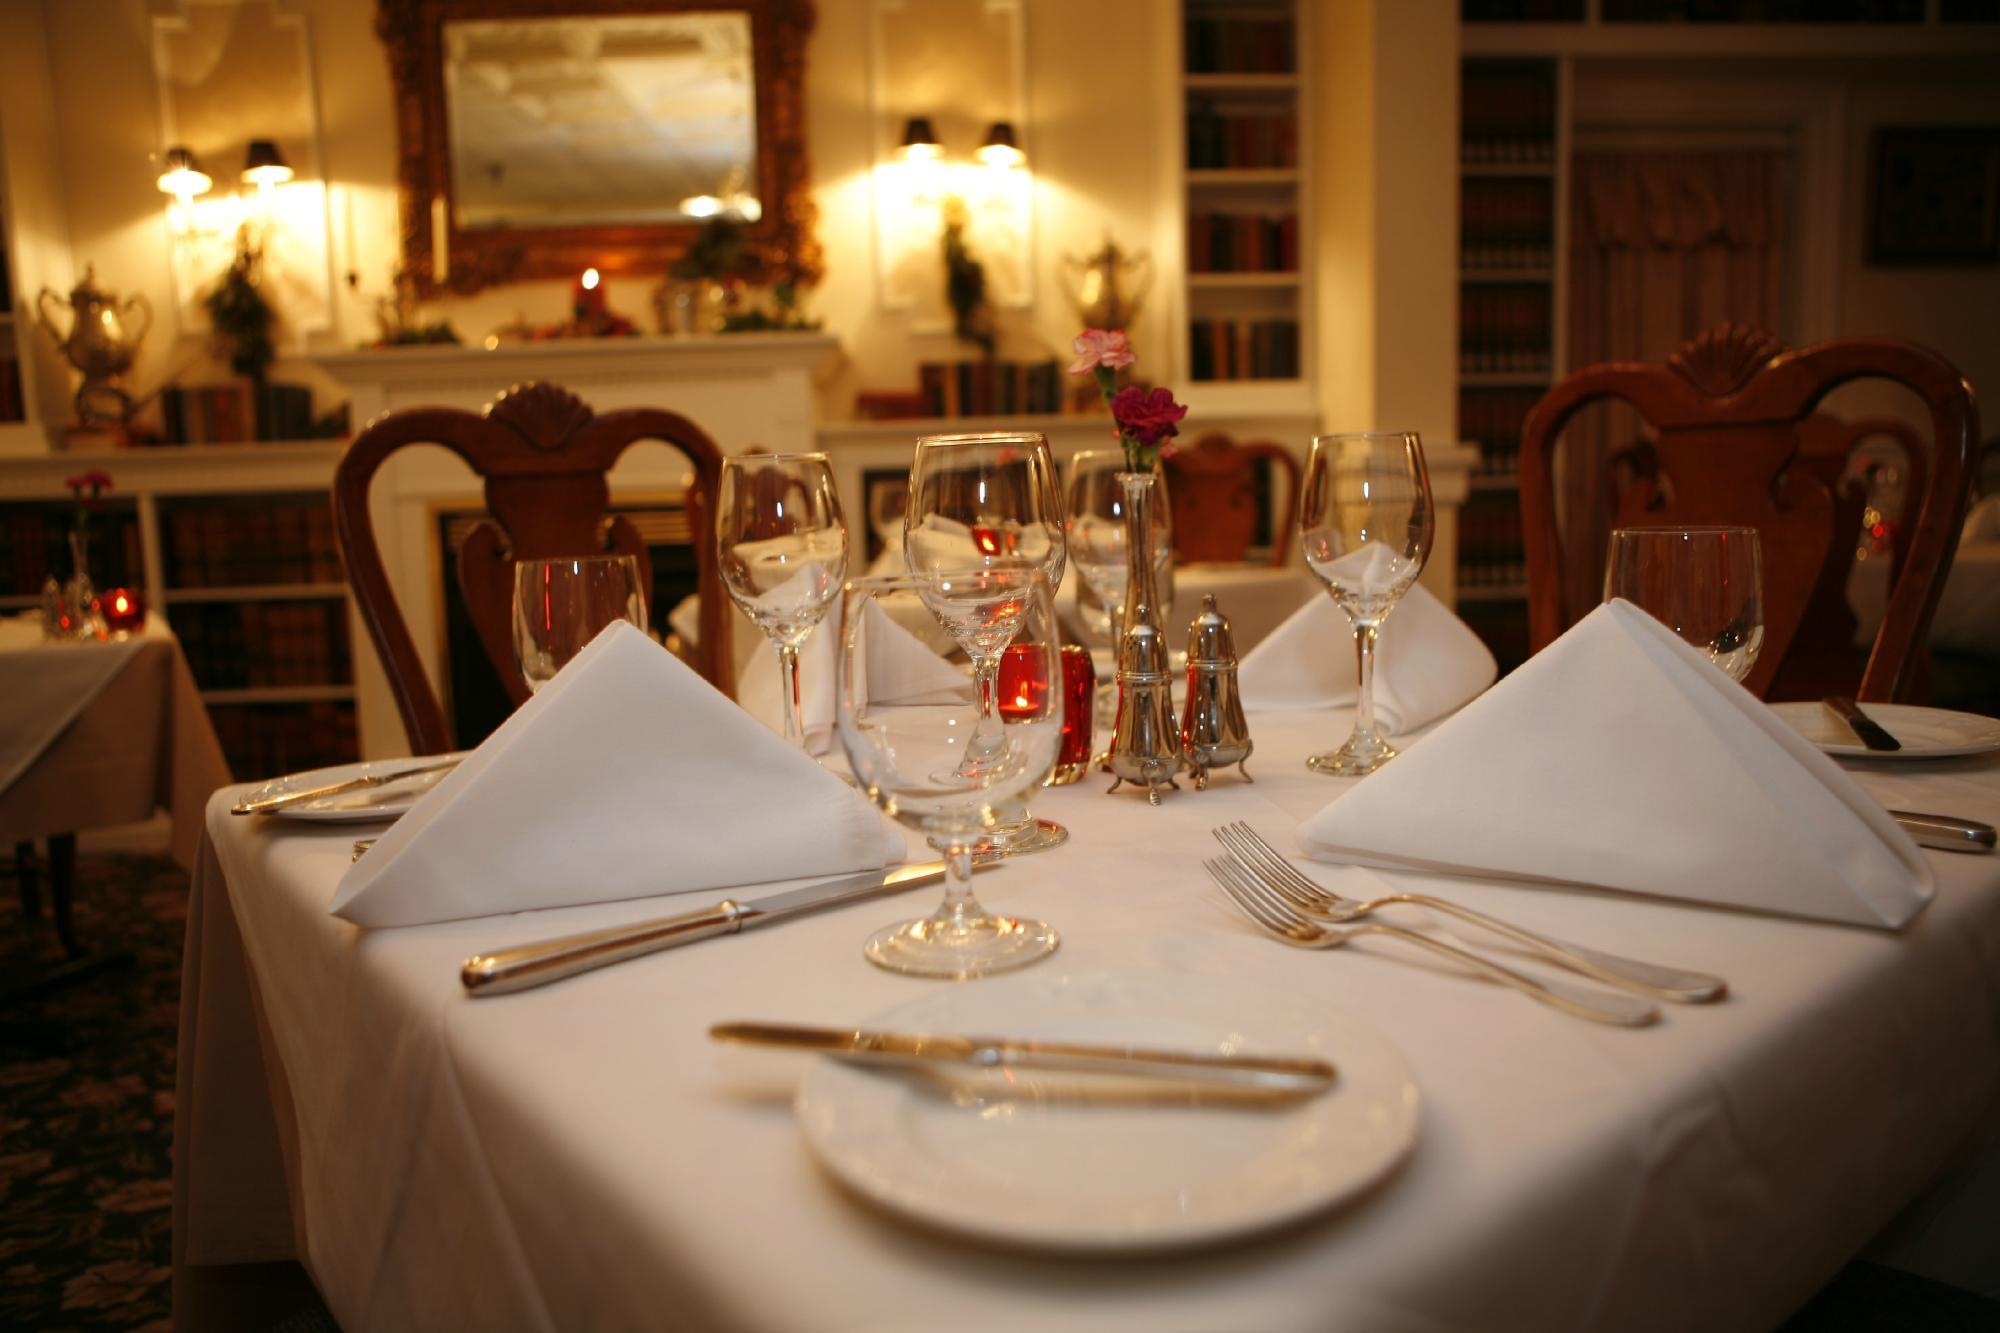 Union Park Dining Room Cape May, New Jersey.jpg